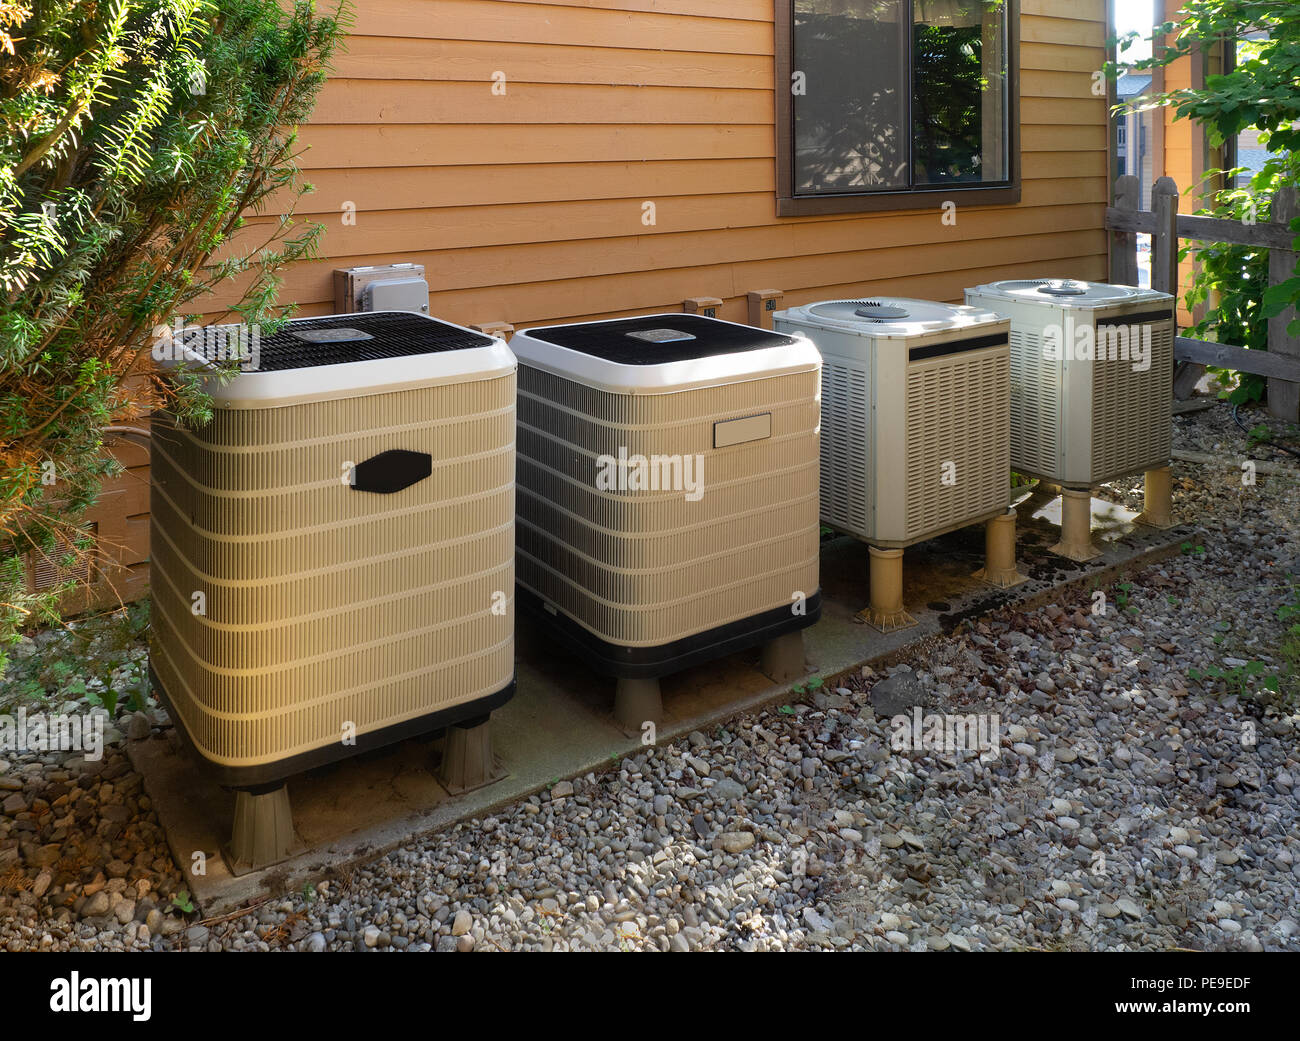 Air conditioning units outside an apartment complex - Stock Image